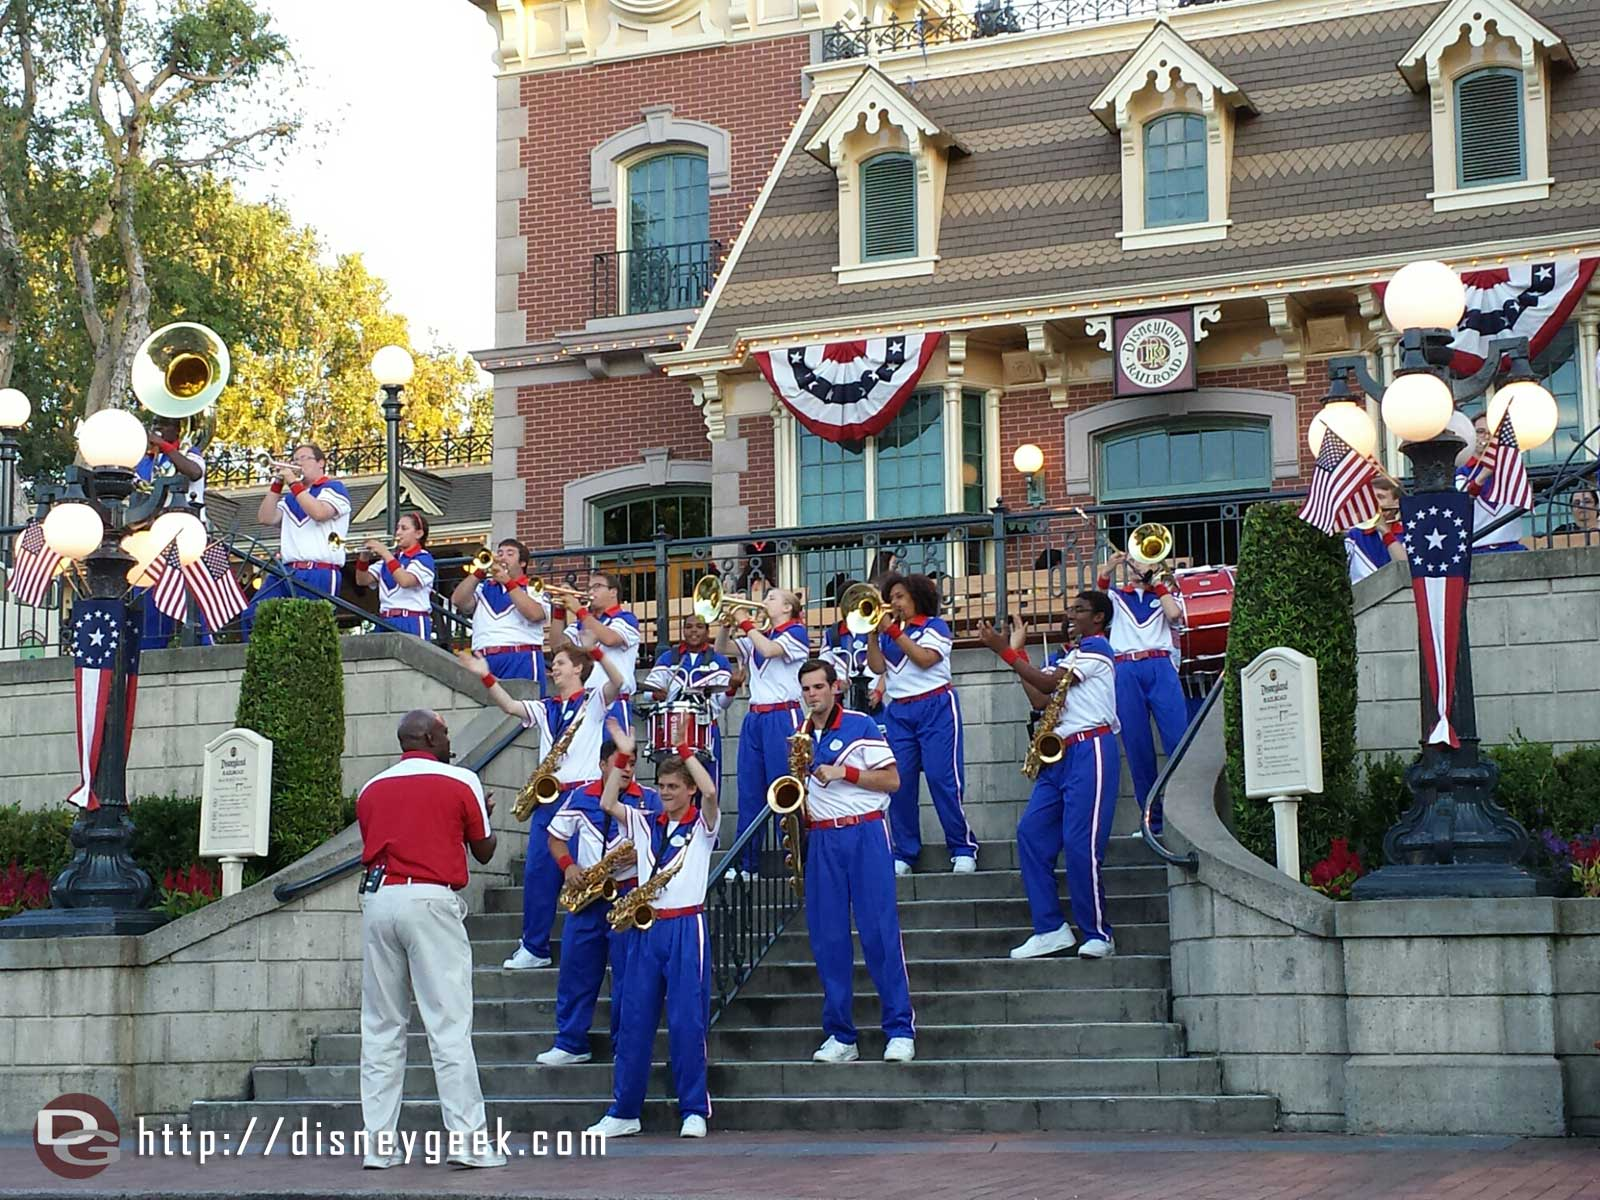 Time for the 7:15 #Disneyland All-American College Band performance